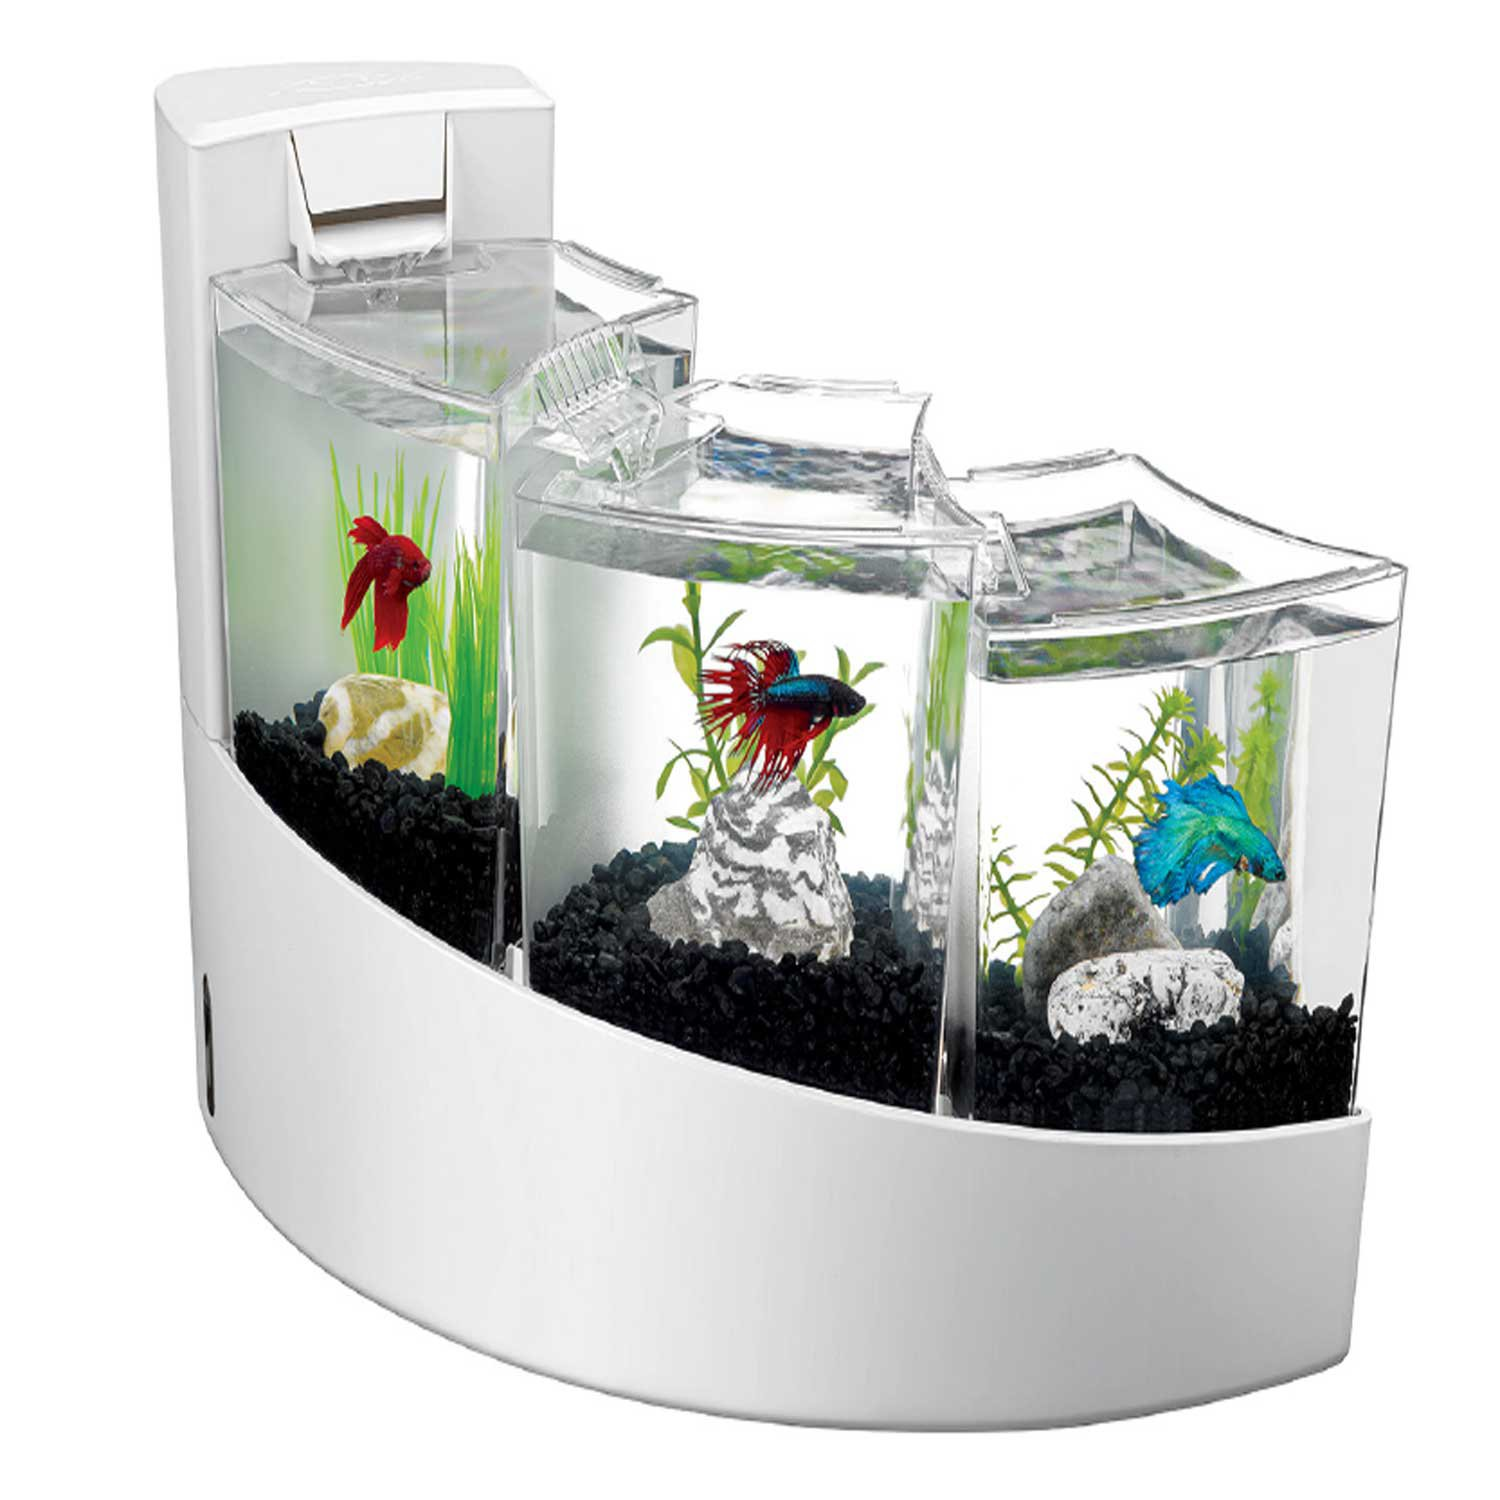 Aqueon betta falls aquarium kit in white petco for Betta fish tank with filter